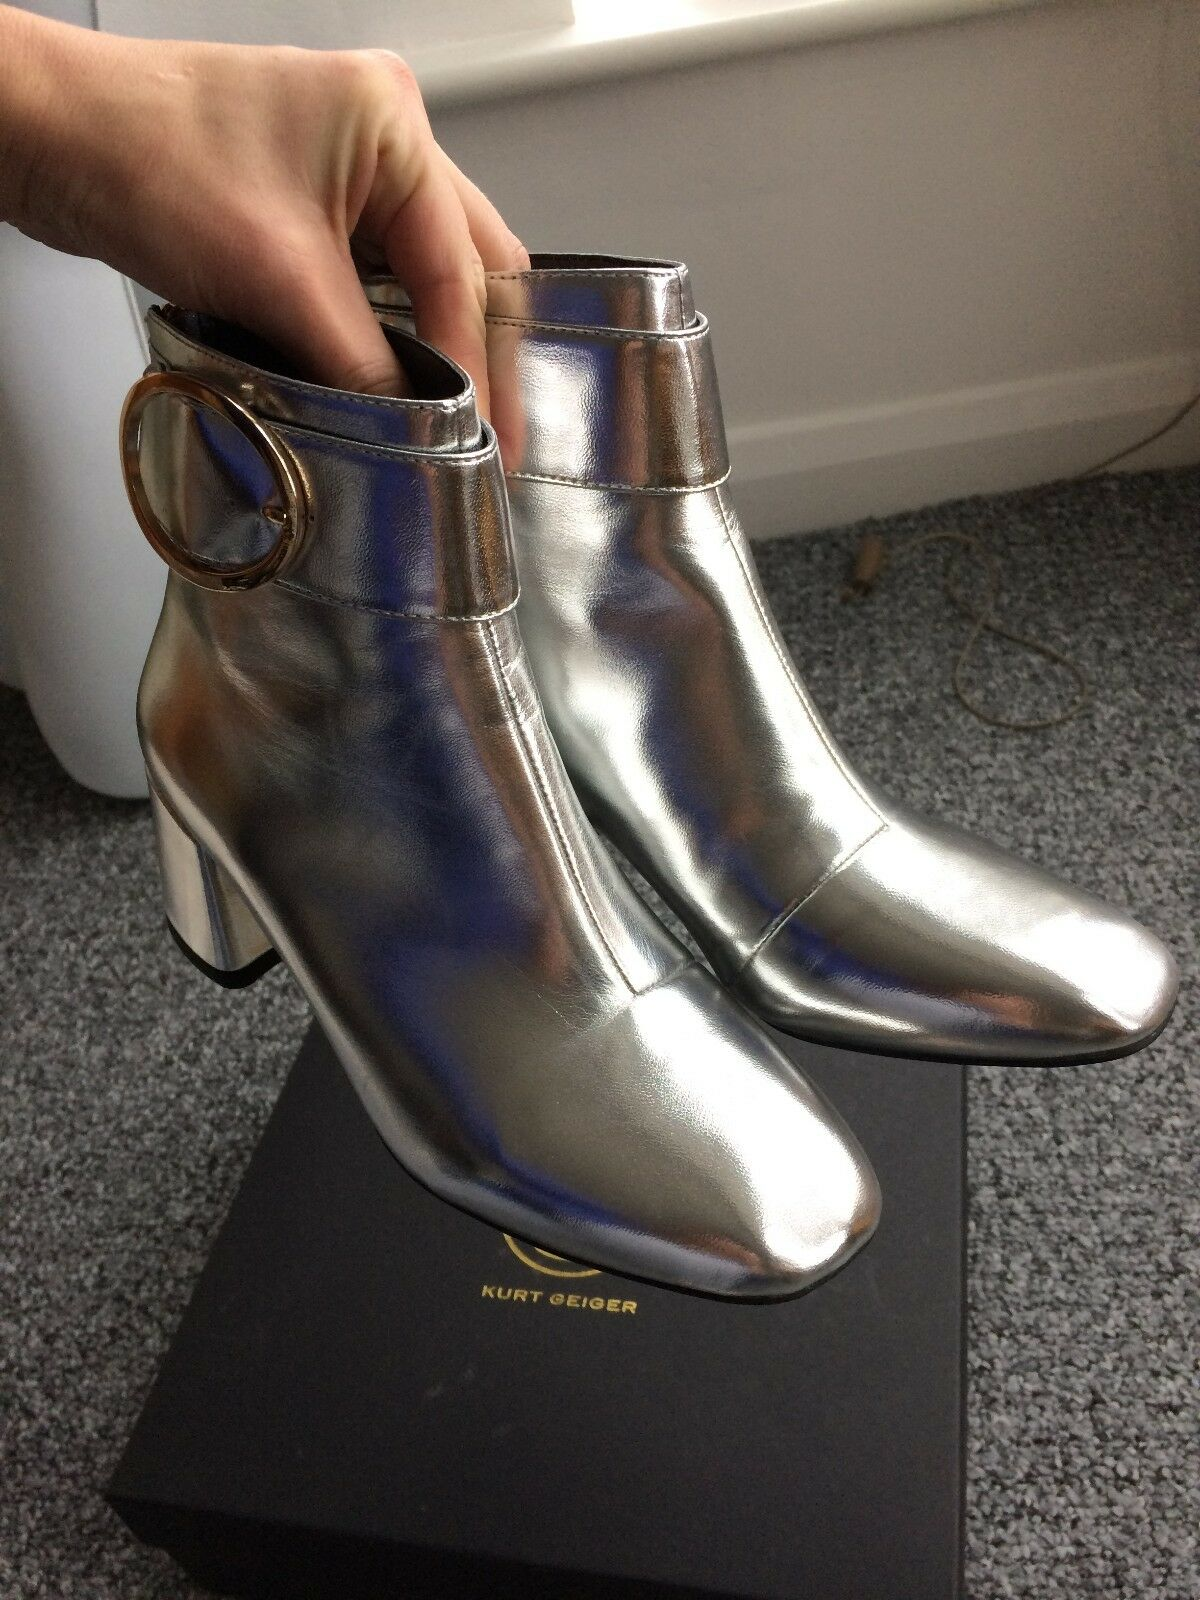 New in box  Ladies KURT GEIGER Dilly Silver Heel Boots. Size UK 4